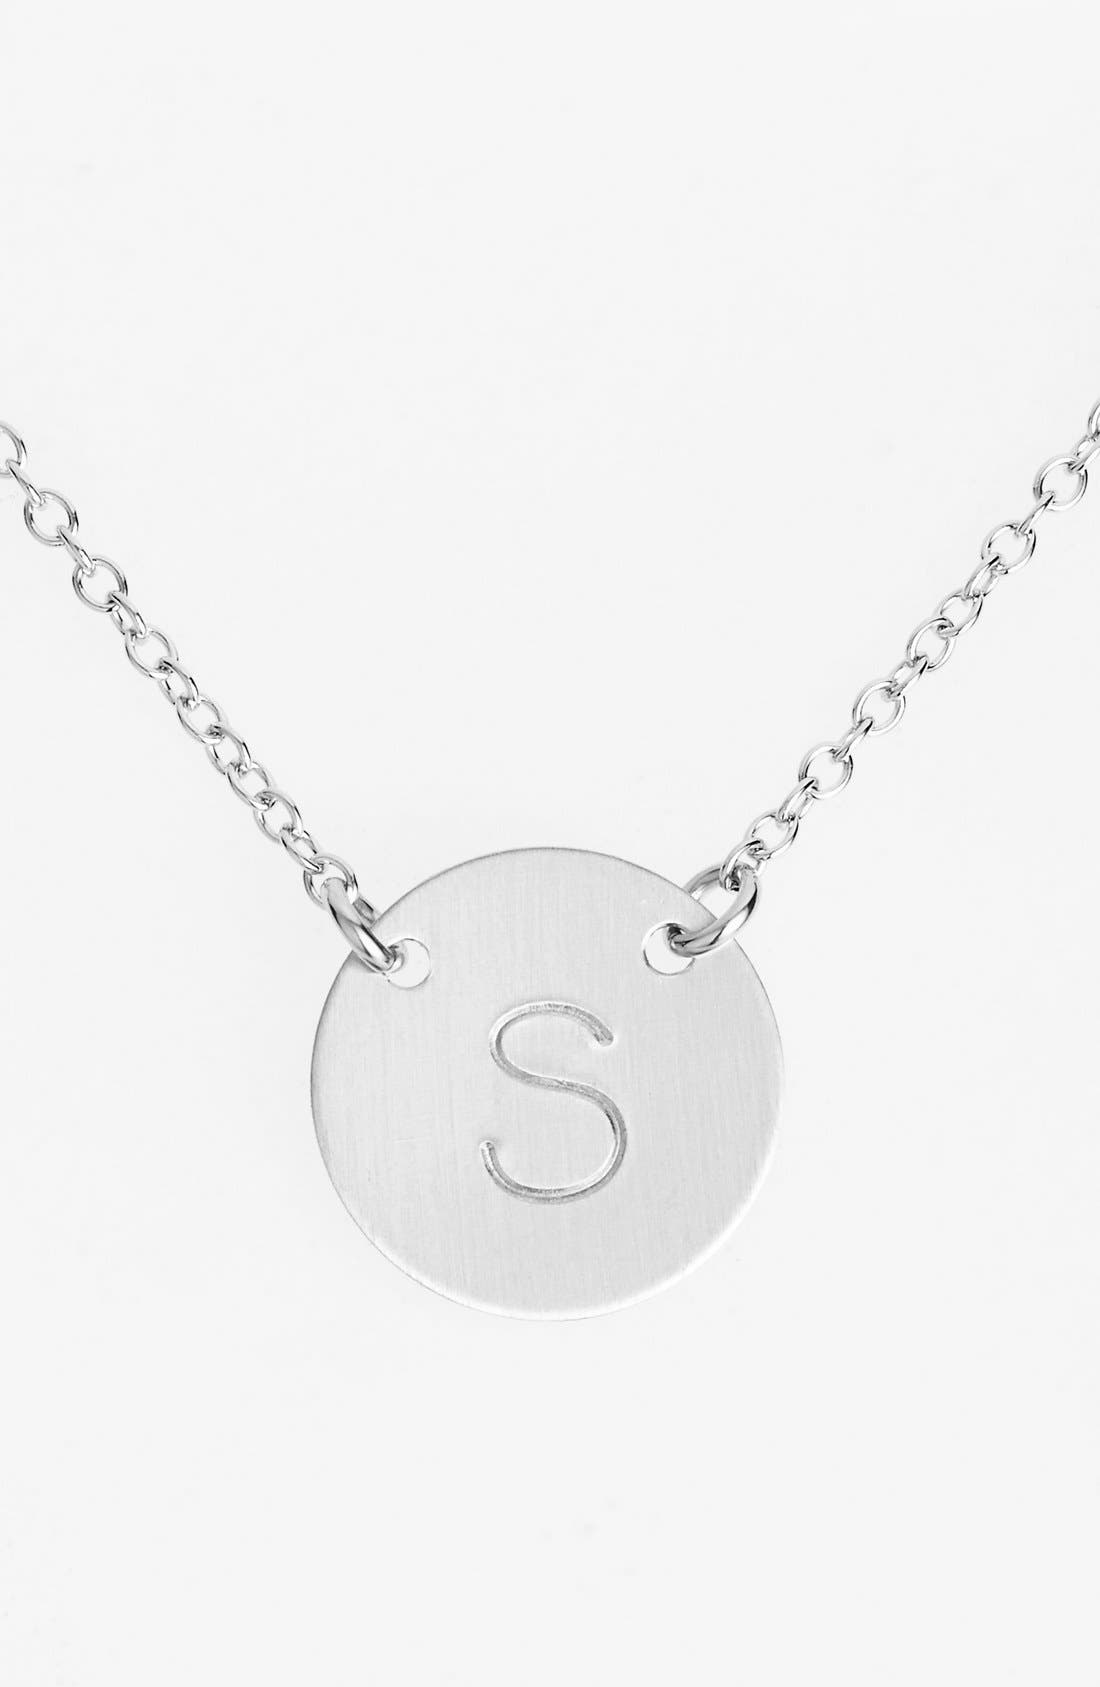 Sterling Silver Initial Disc Necklace,                             Main thumbnail 1, color,                             Sterling Silver S